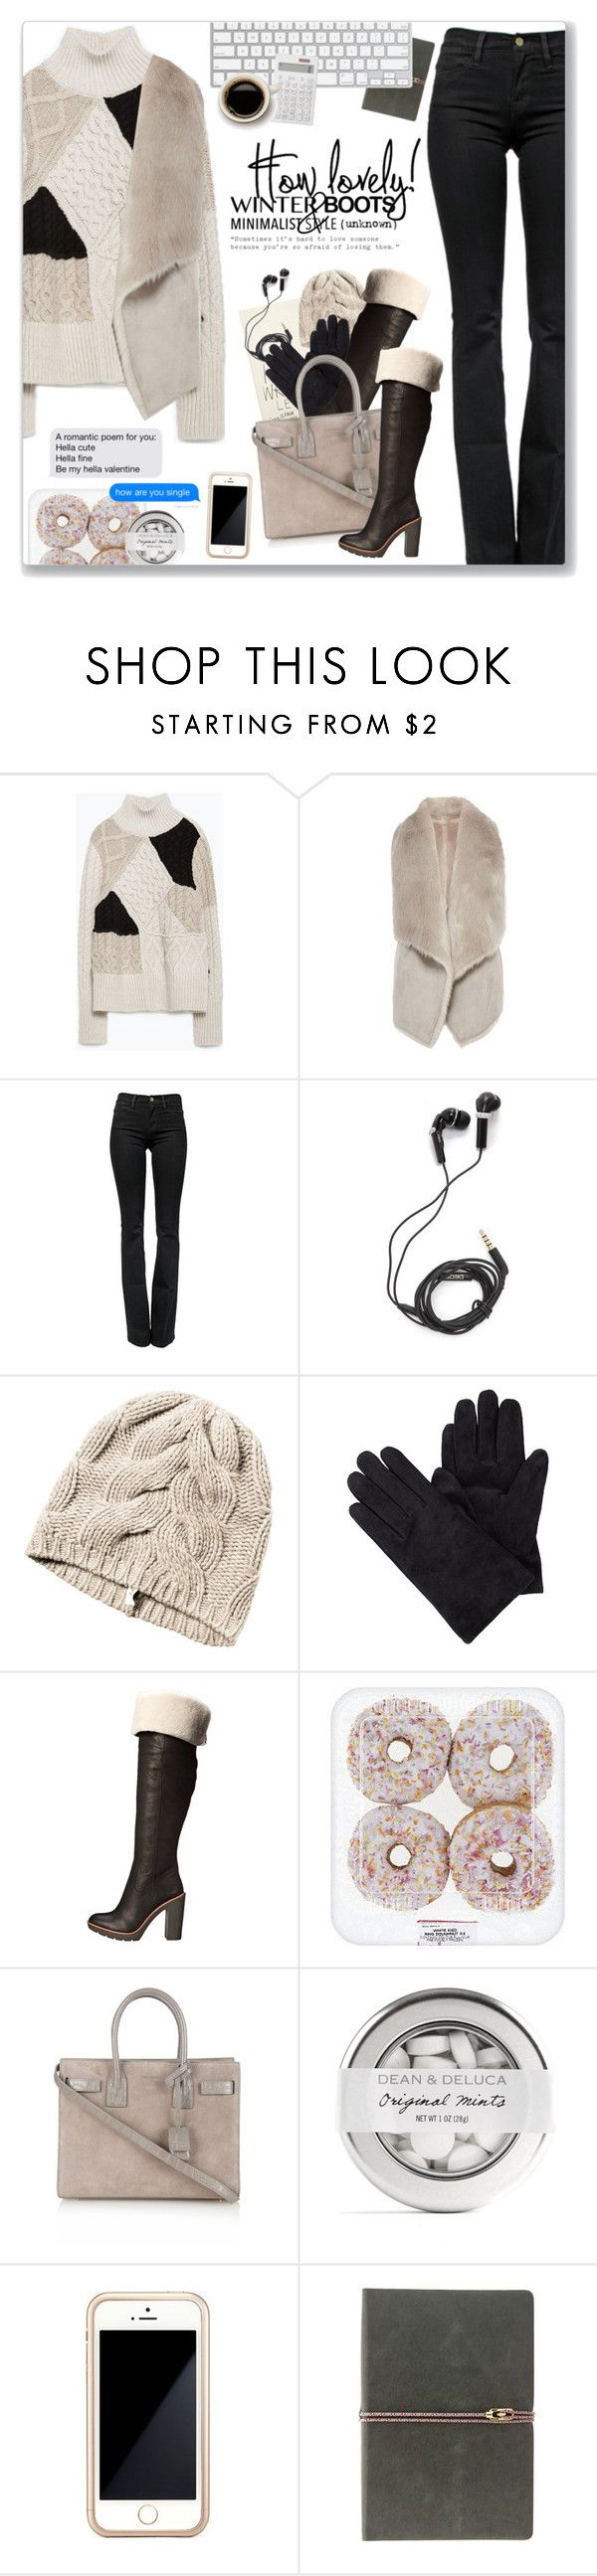 """""""Imbranato, Tiziano Ferro"""" by blendasantos ❤ liked on Polyvore featuring Zara, Coast, Frame Denim, DEOS, Kate Spade, Yves Saint Laurent, Squair, Love Quotes Scarves, Muji and Minimaliststyle"""